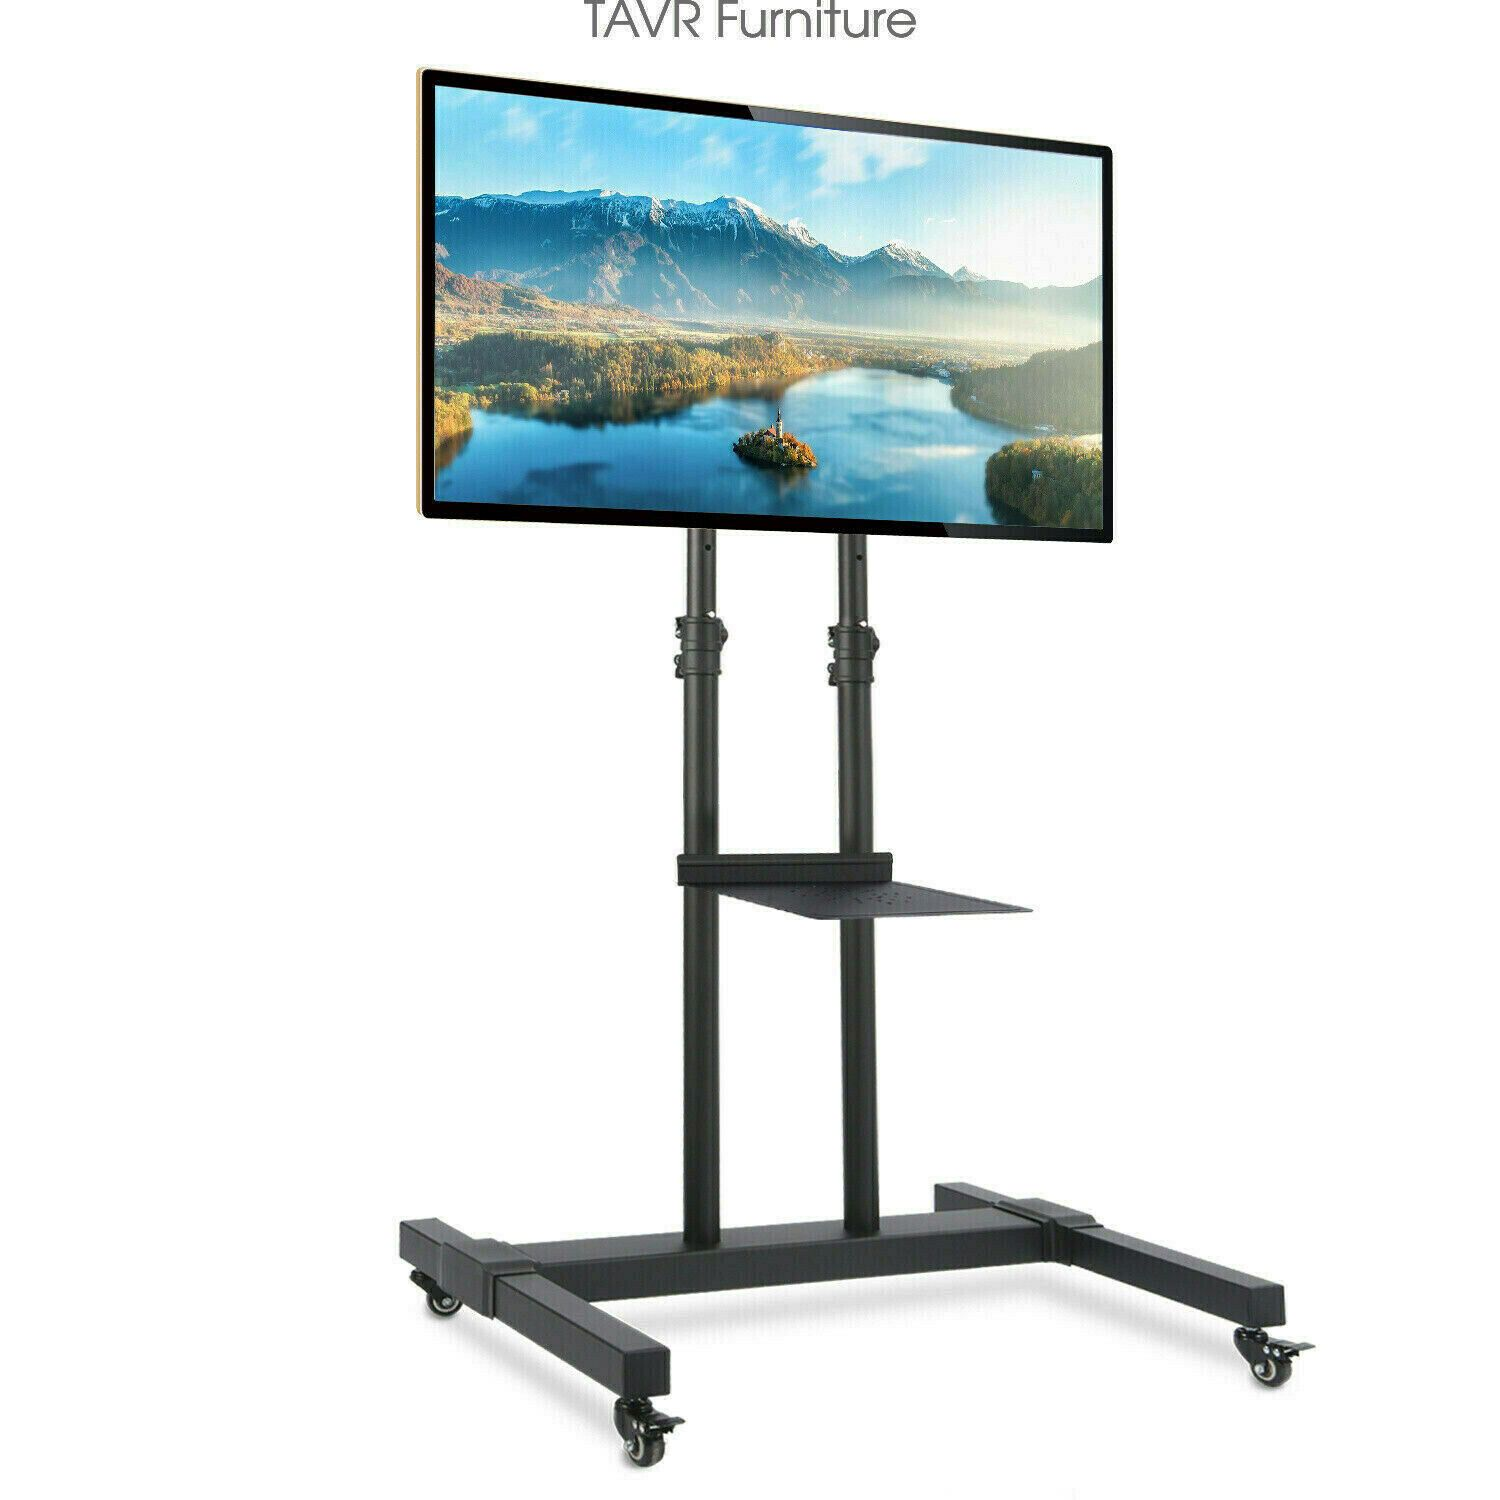 Mobile Tv Floor Stand With Tilt Mount And Wheels For 32 80 Inch